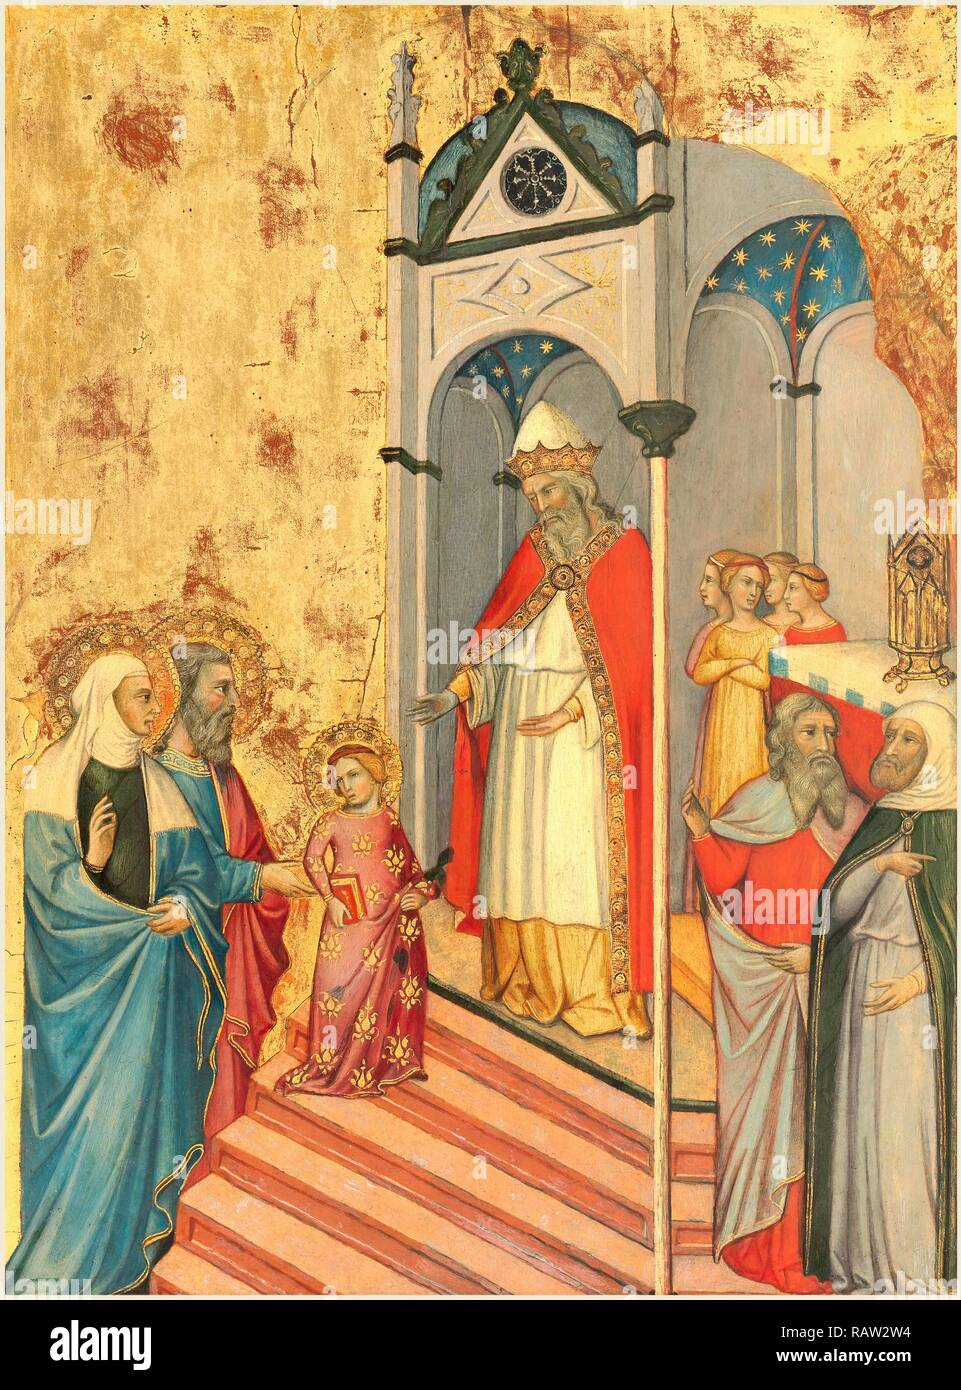 Andrea di Bartolo, Italian (documented from 1389-died 1428), The Presentation of the Virgin, c. 1400, tempera on reimagined - Stock Image